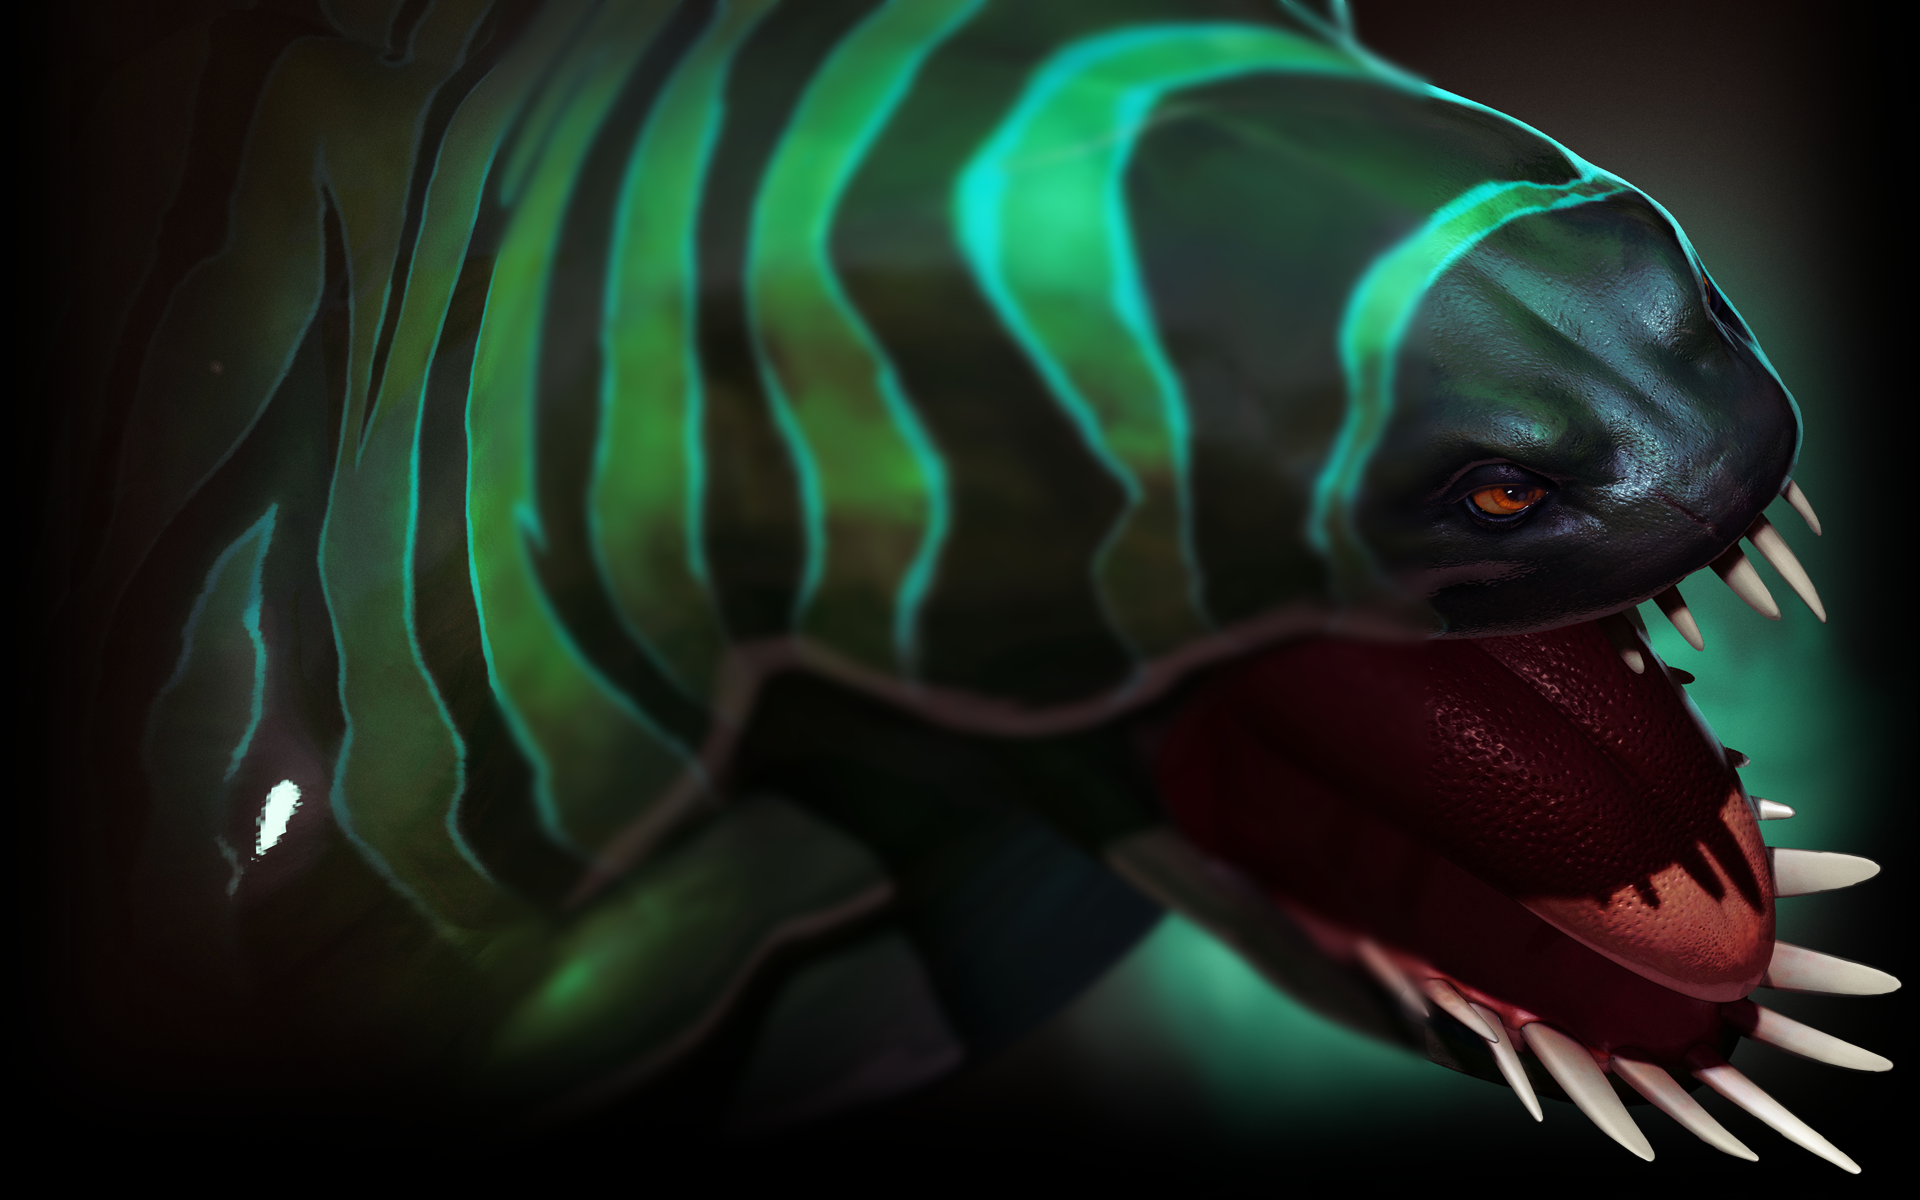 how to change profile picture in dota2